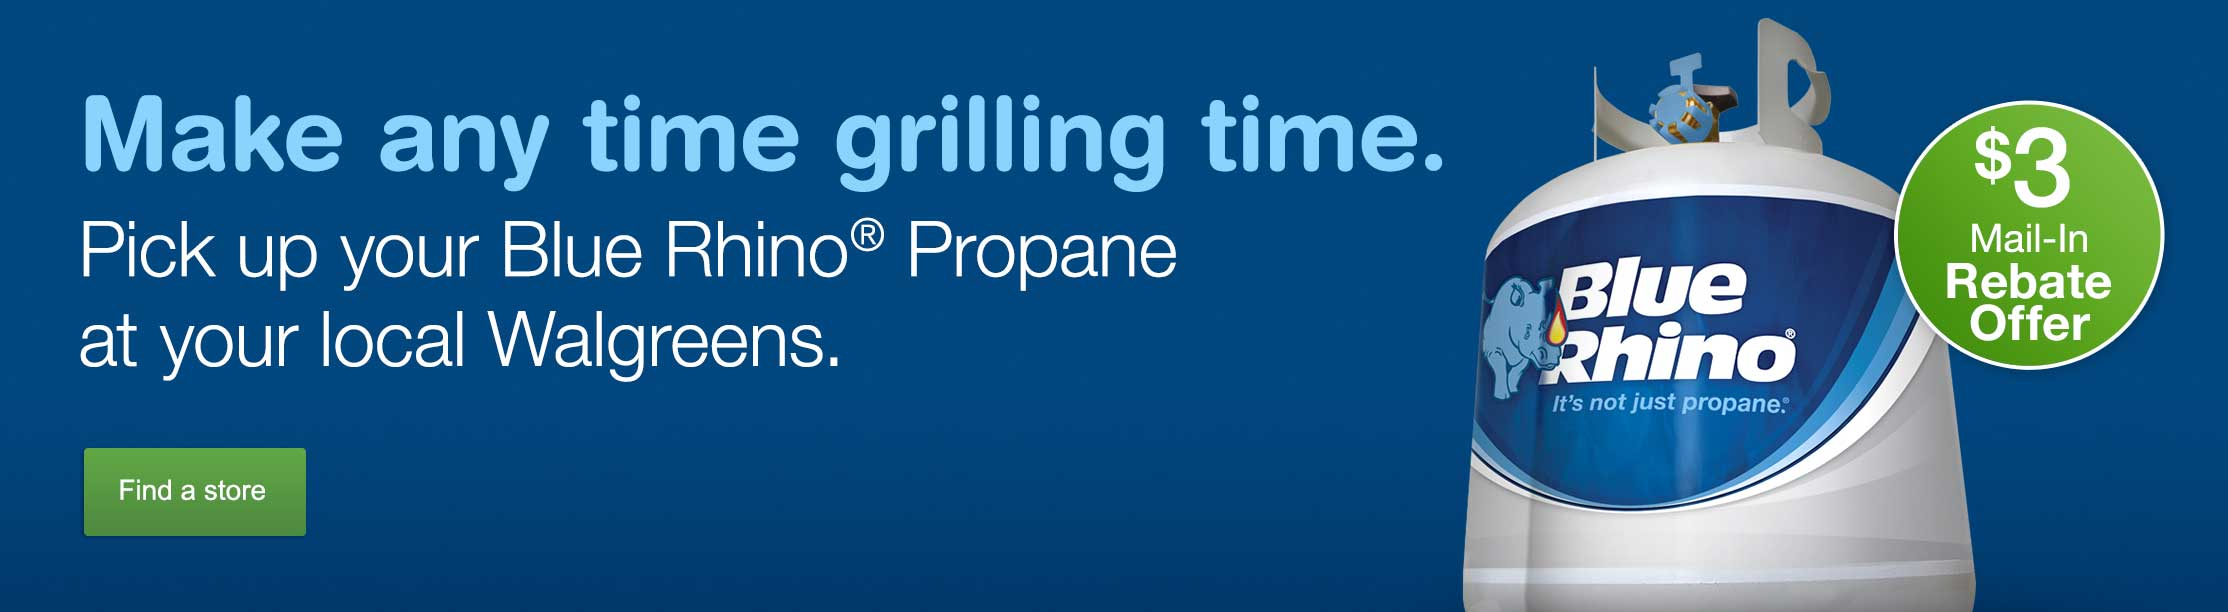 Make any time grilling time. Blue Rhino(R) Propane. $3 Mail-In Rebate Offer. Find a store.